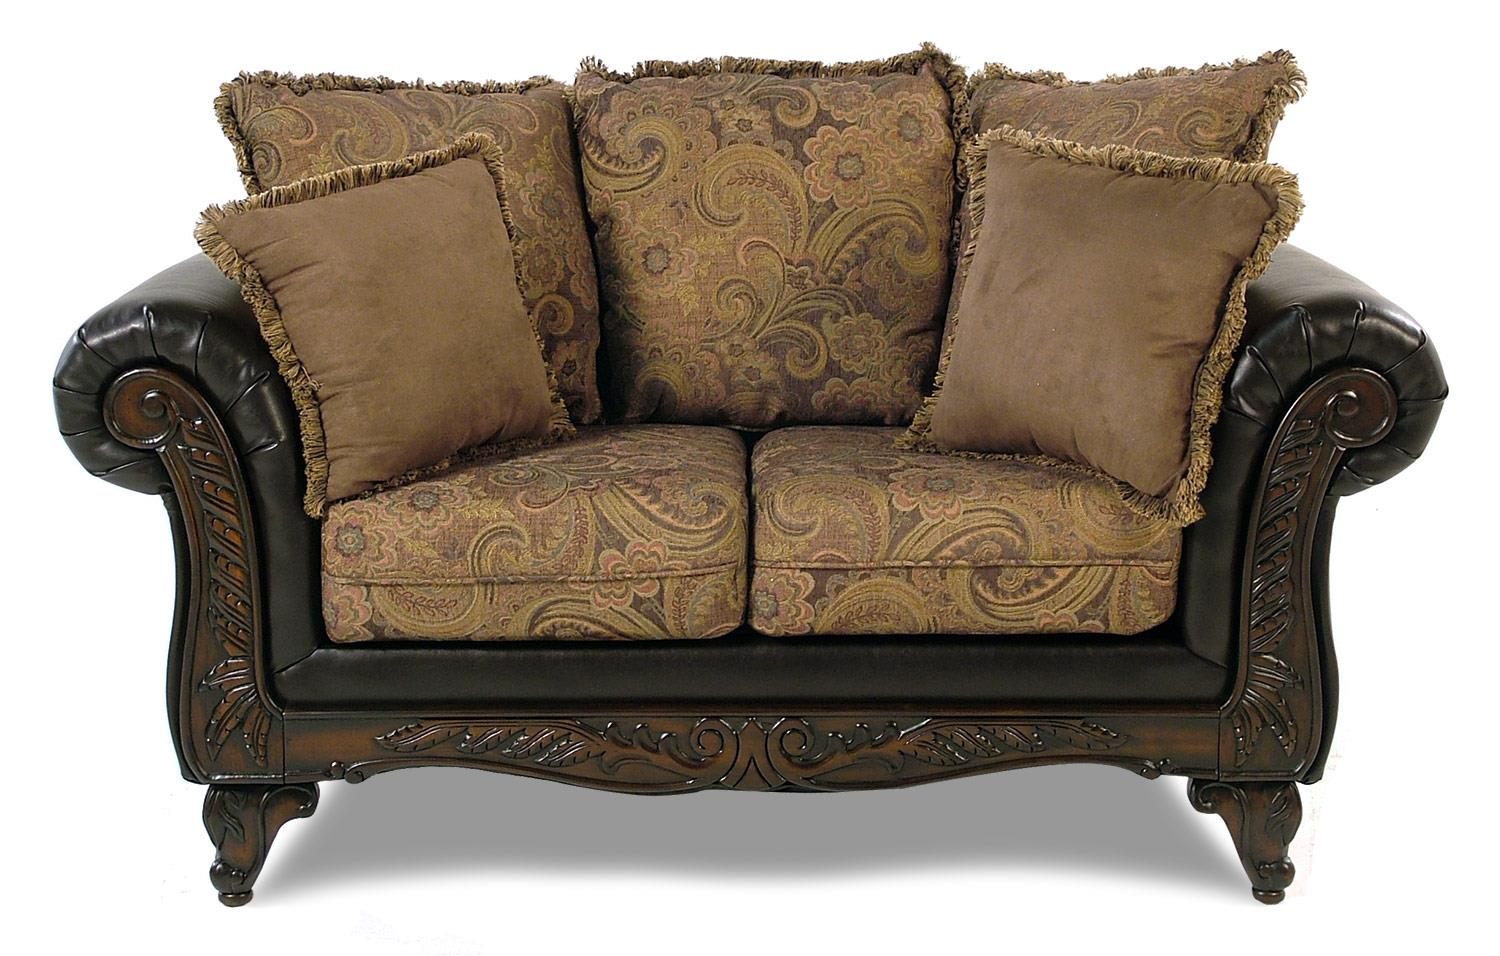 Serta Upholstery Monaco Wood Face Love Seat - Item Number: 7685 LS